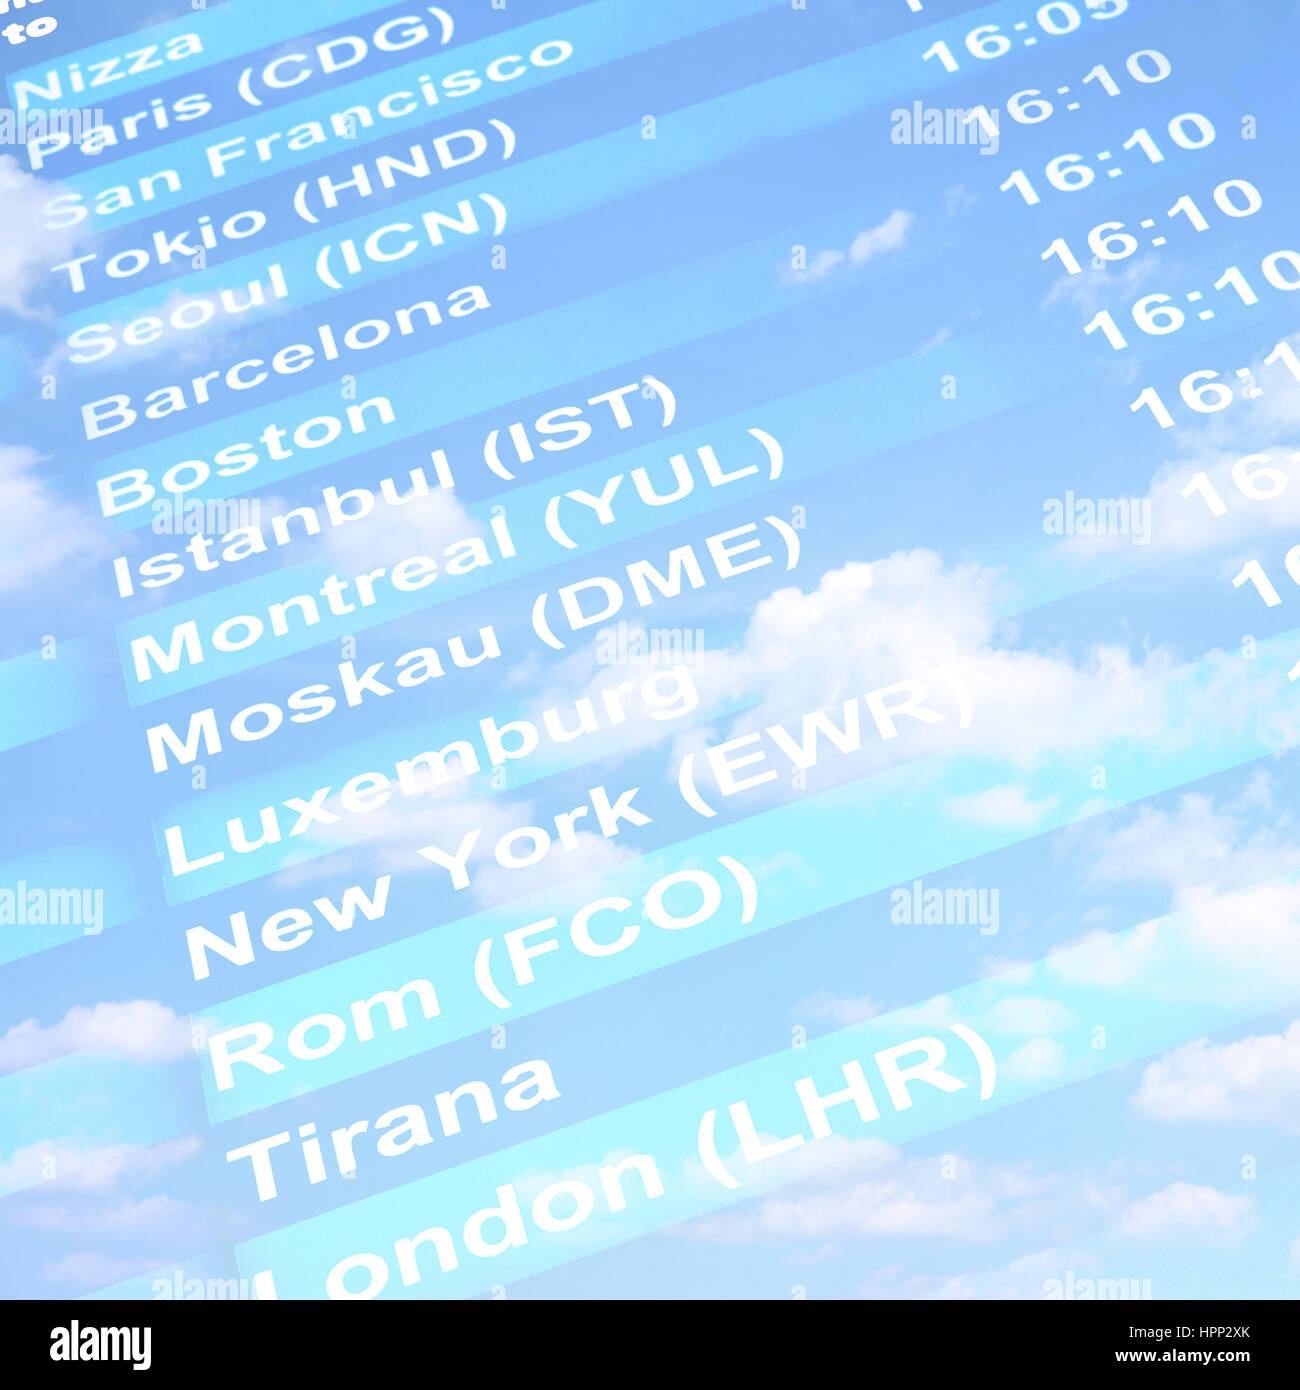 Flight information board against blue sky with clouds - Stock Image